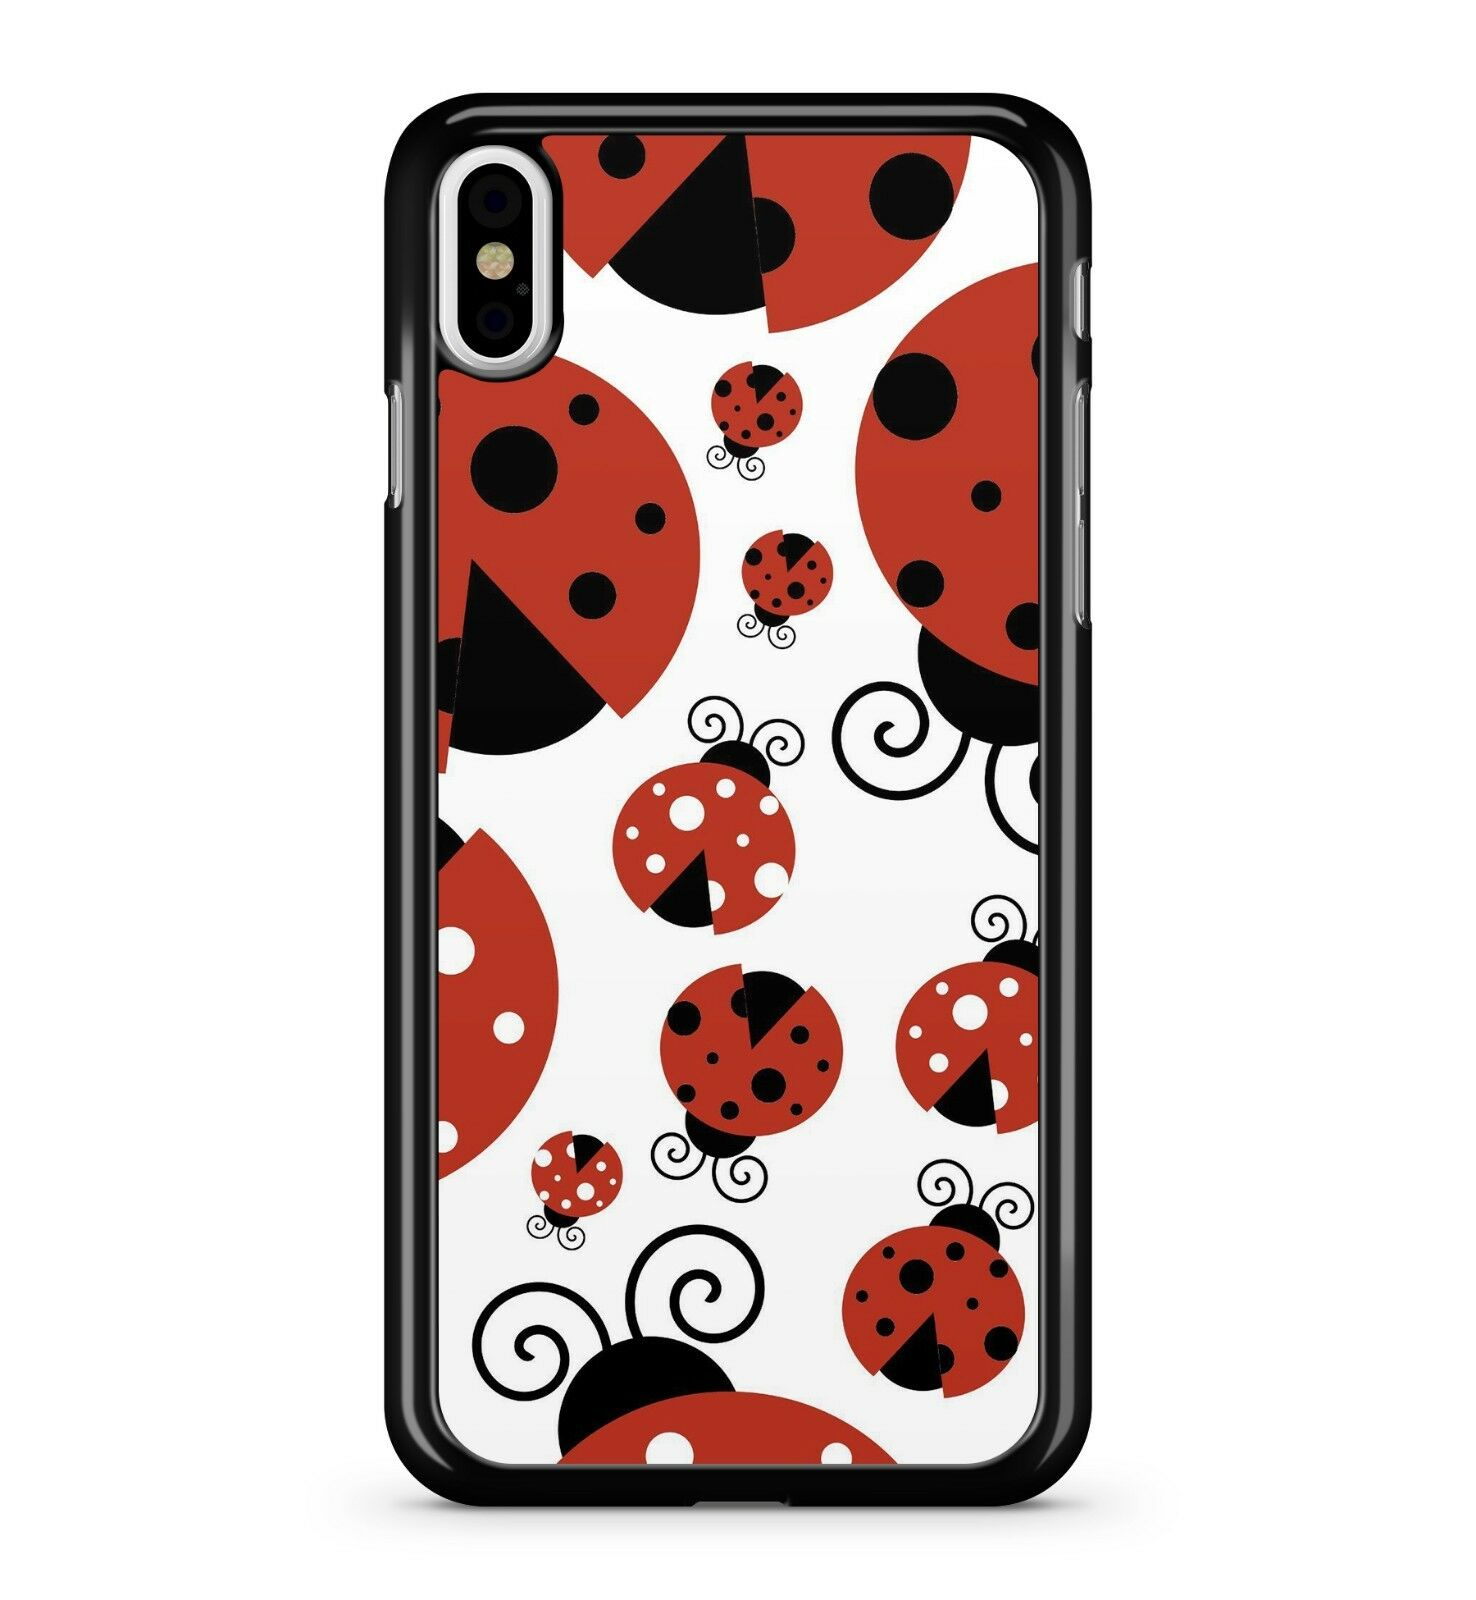 Details about Spotted Crimson Red Ladybird Pattern Beetle Insect Creature  2D Phone Case Cover